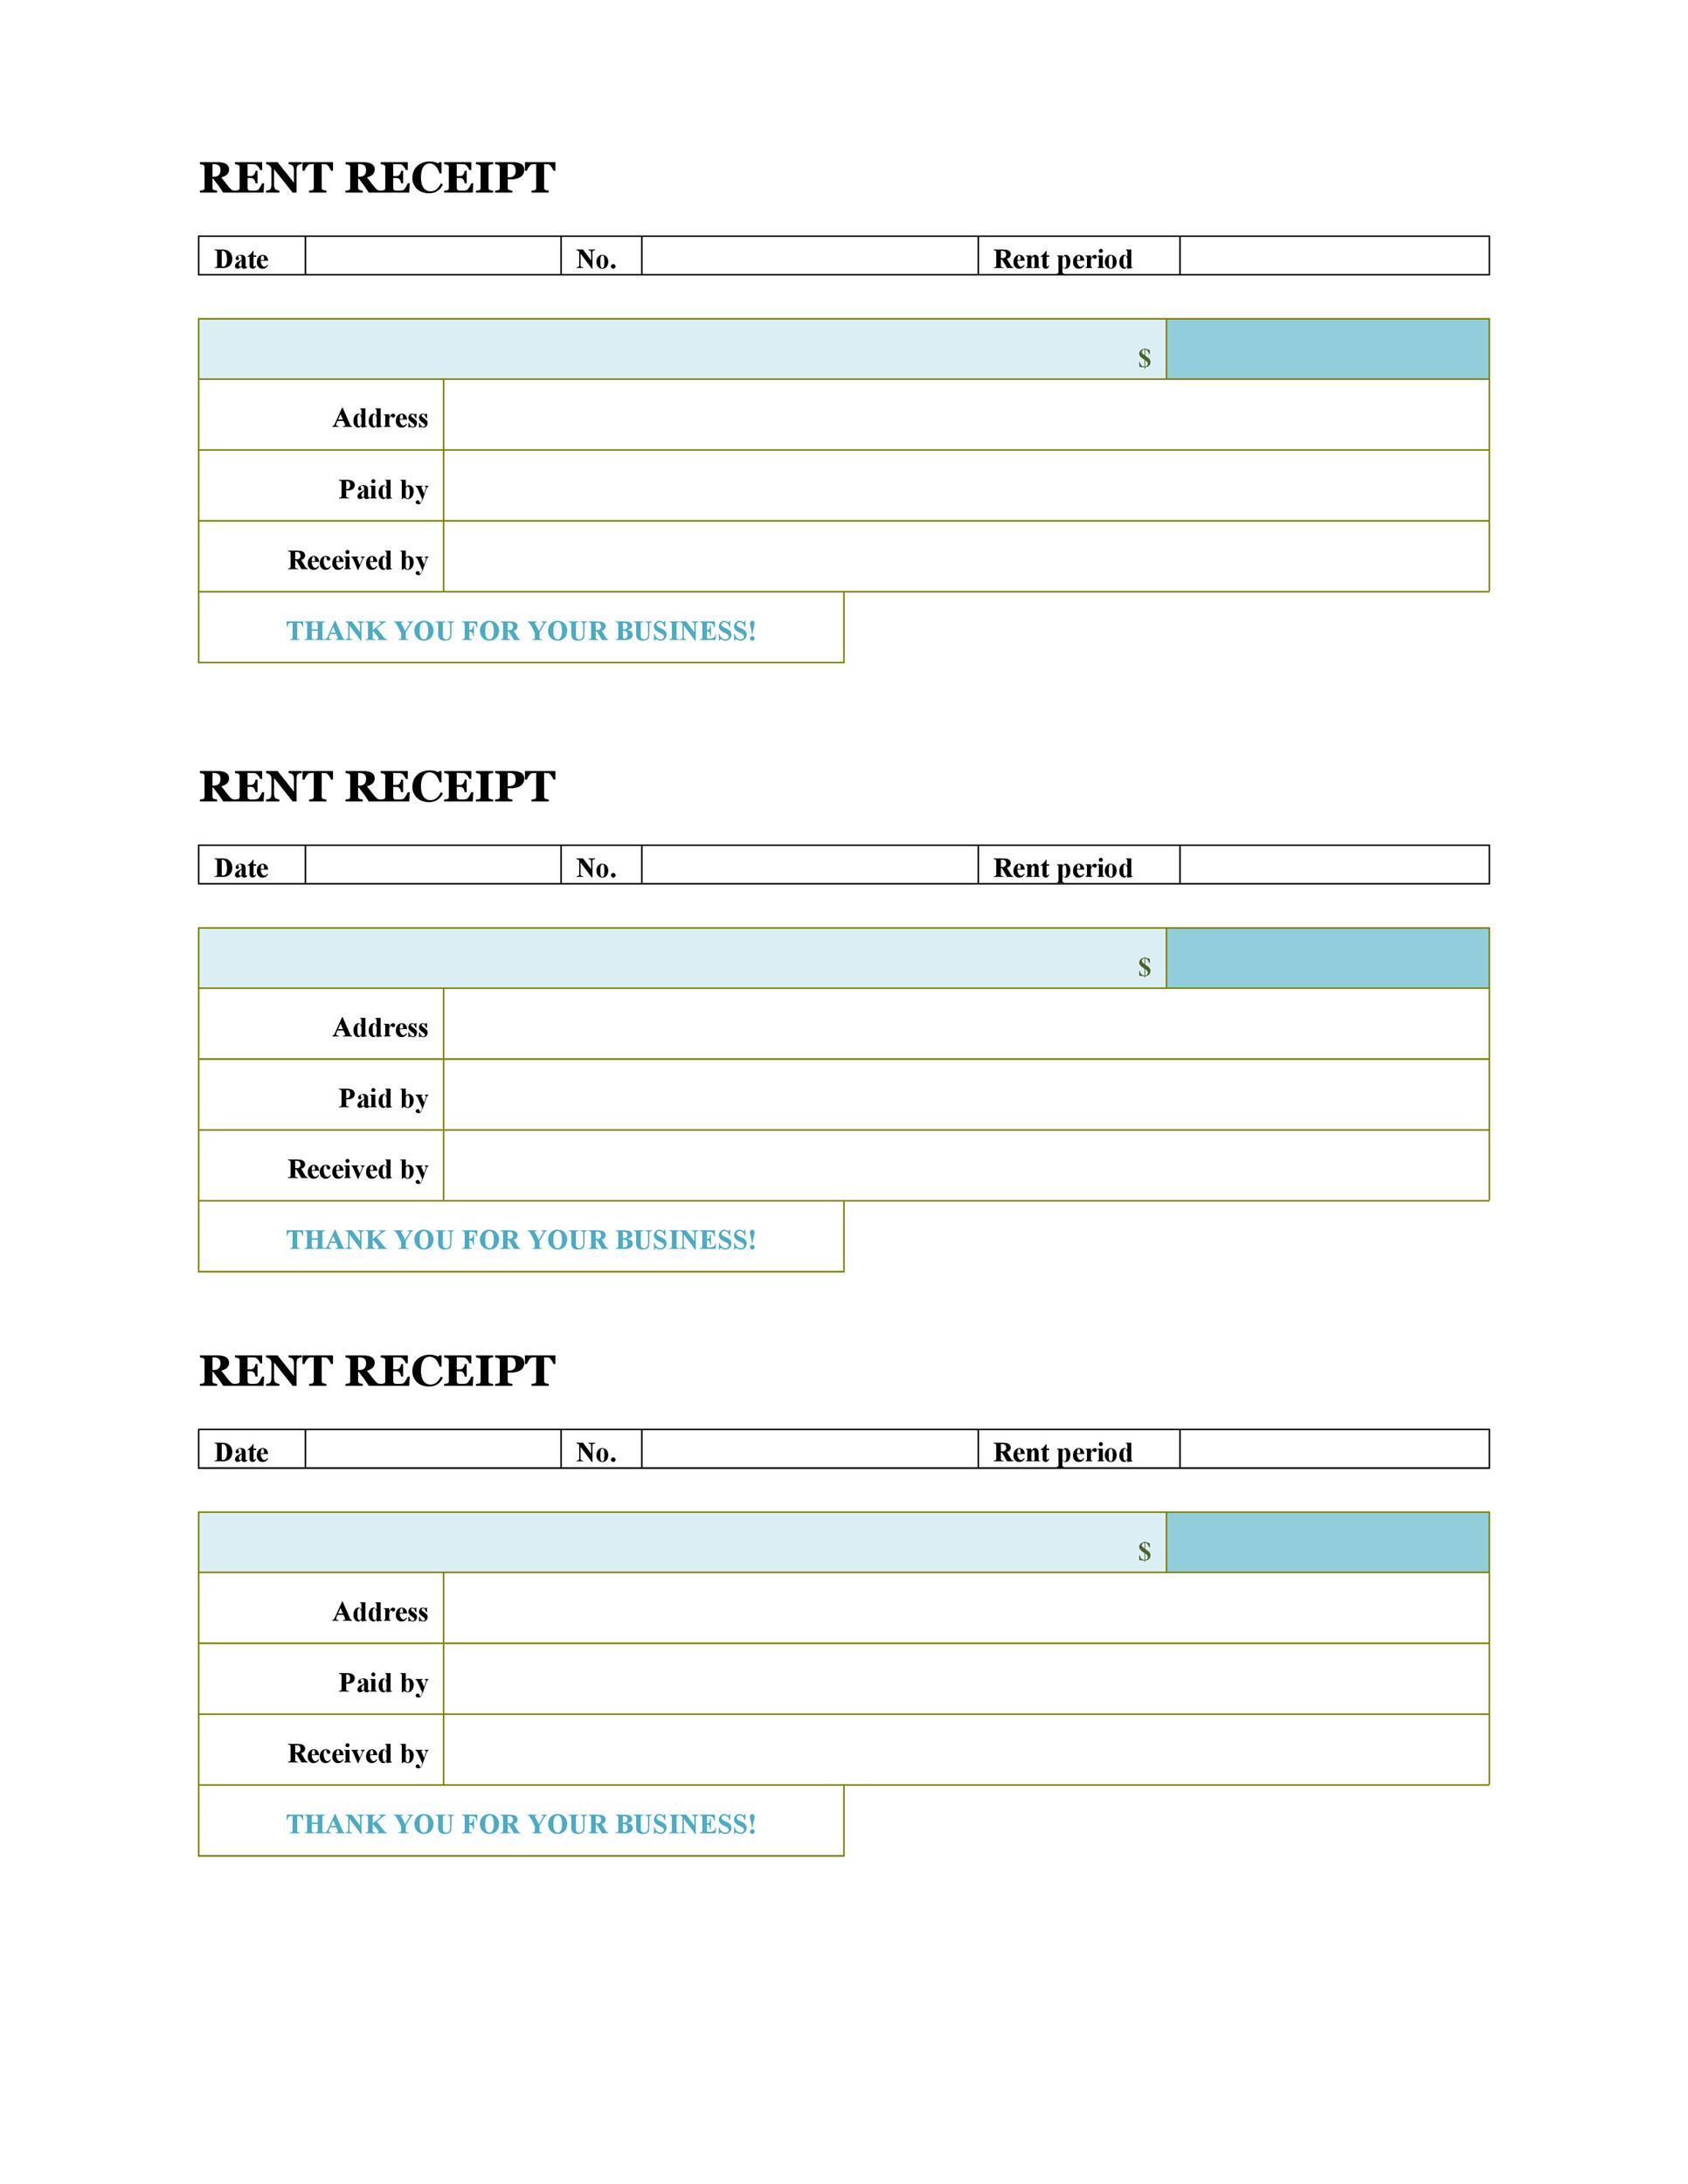 50 Free Receipt Templates Cash Sales Donation Taxi – Rental Receipts Templates